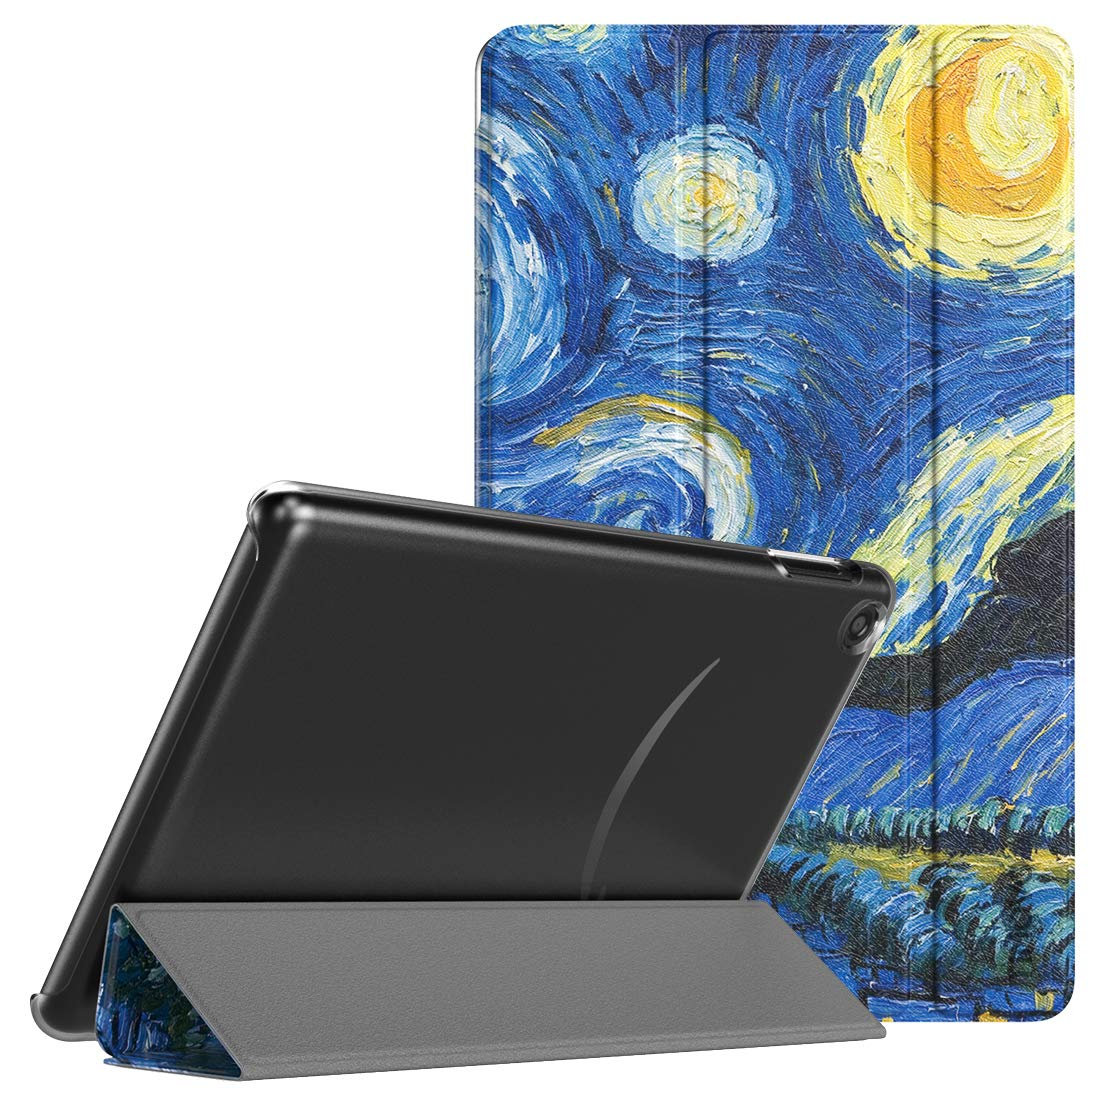 TiMOVO Case Fits All-New Fire 7 Tablet (9th Generation, 2019 Release), Lightweight Slim Tri-fold Stand Cover Translucent Case with Auto Wake/Sleep Fit Amazon Fire 7 - Starry Night